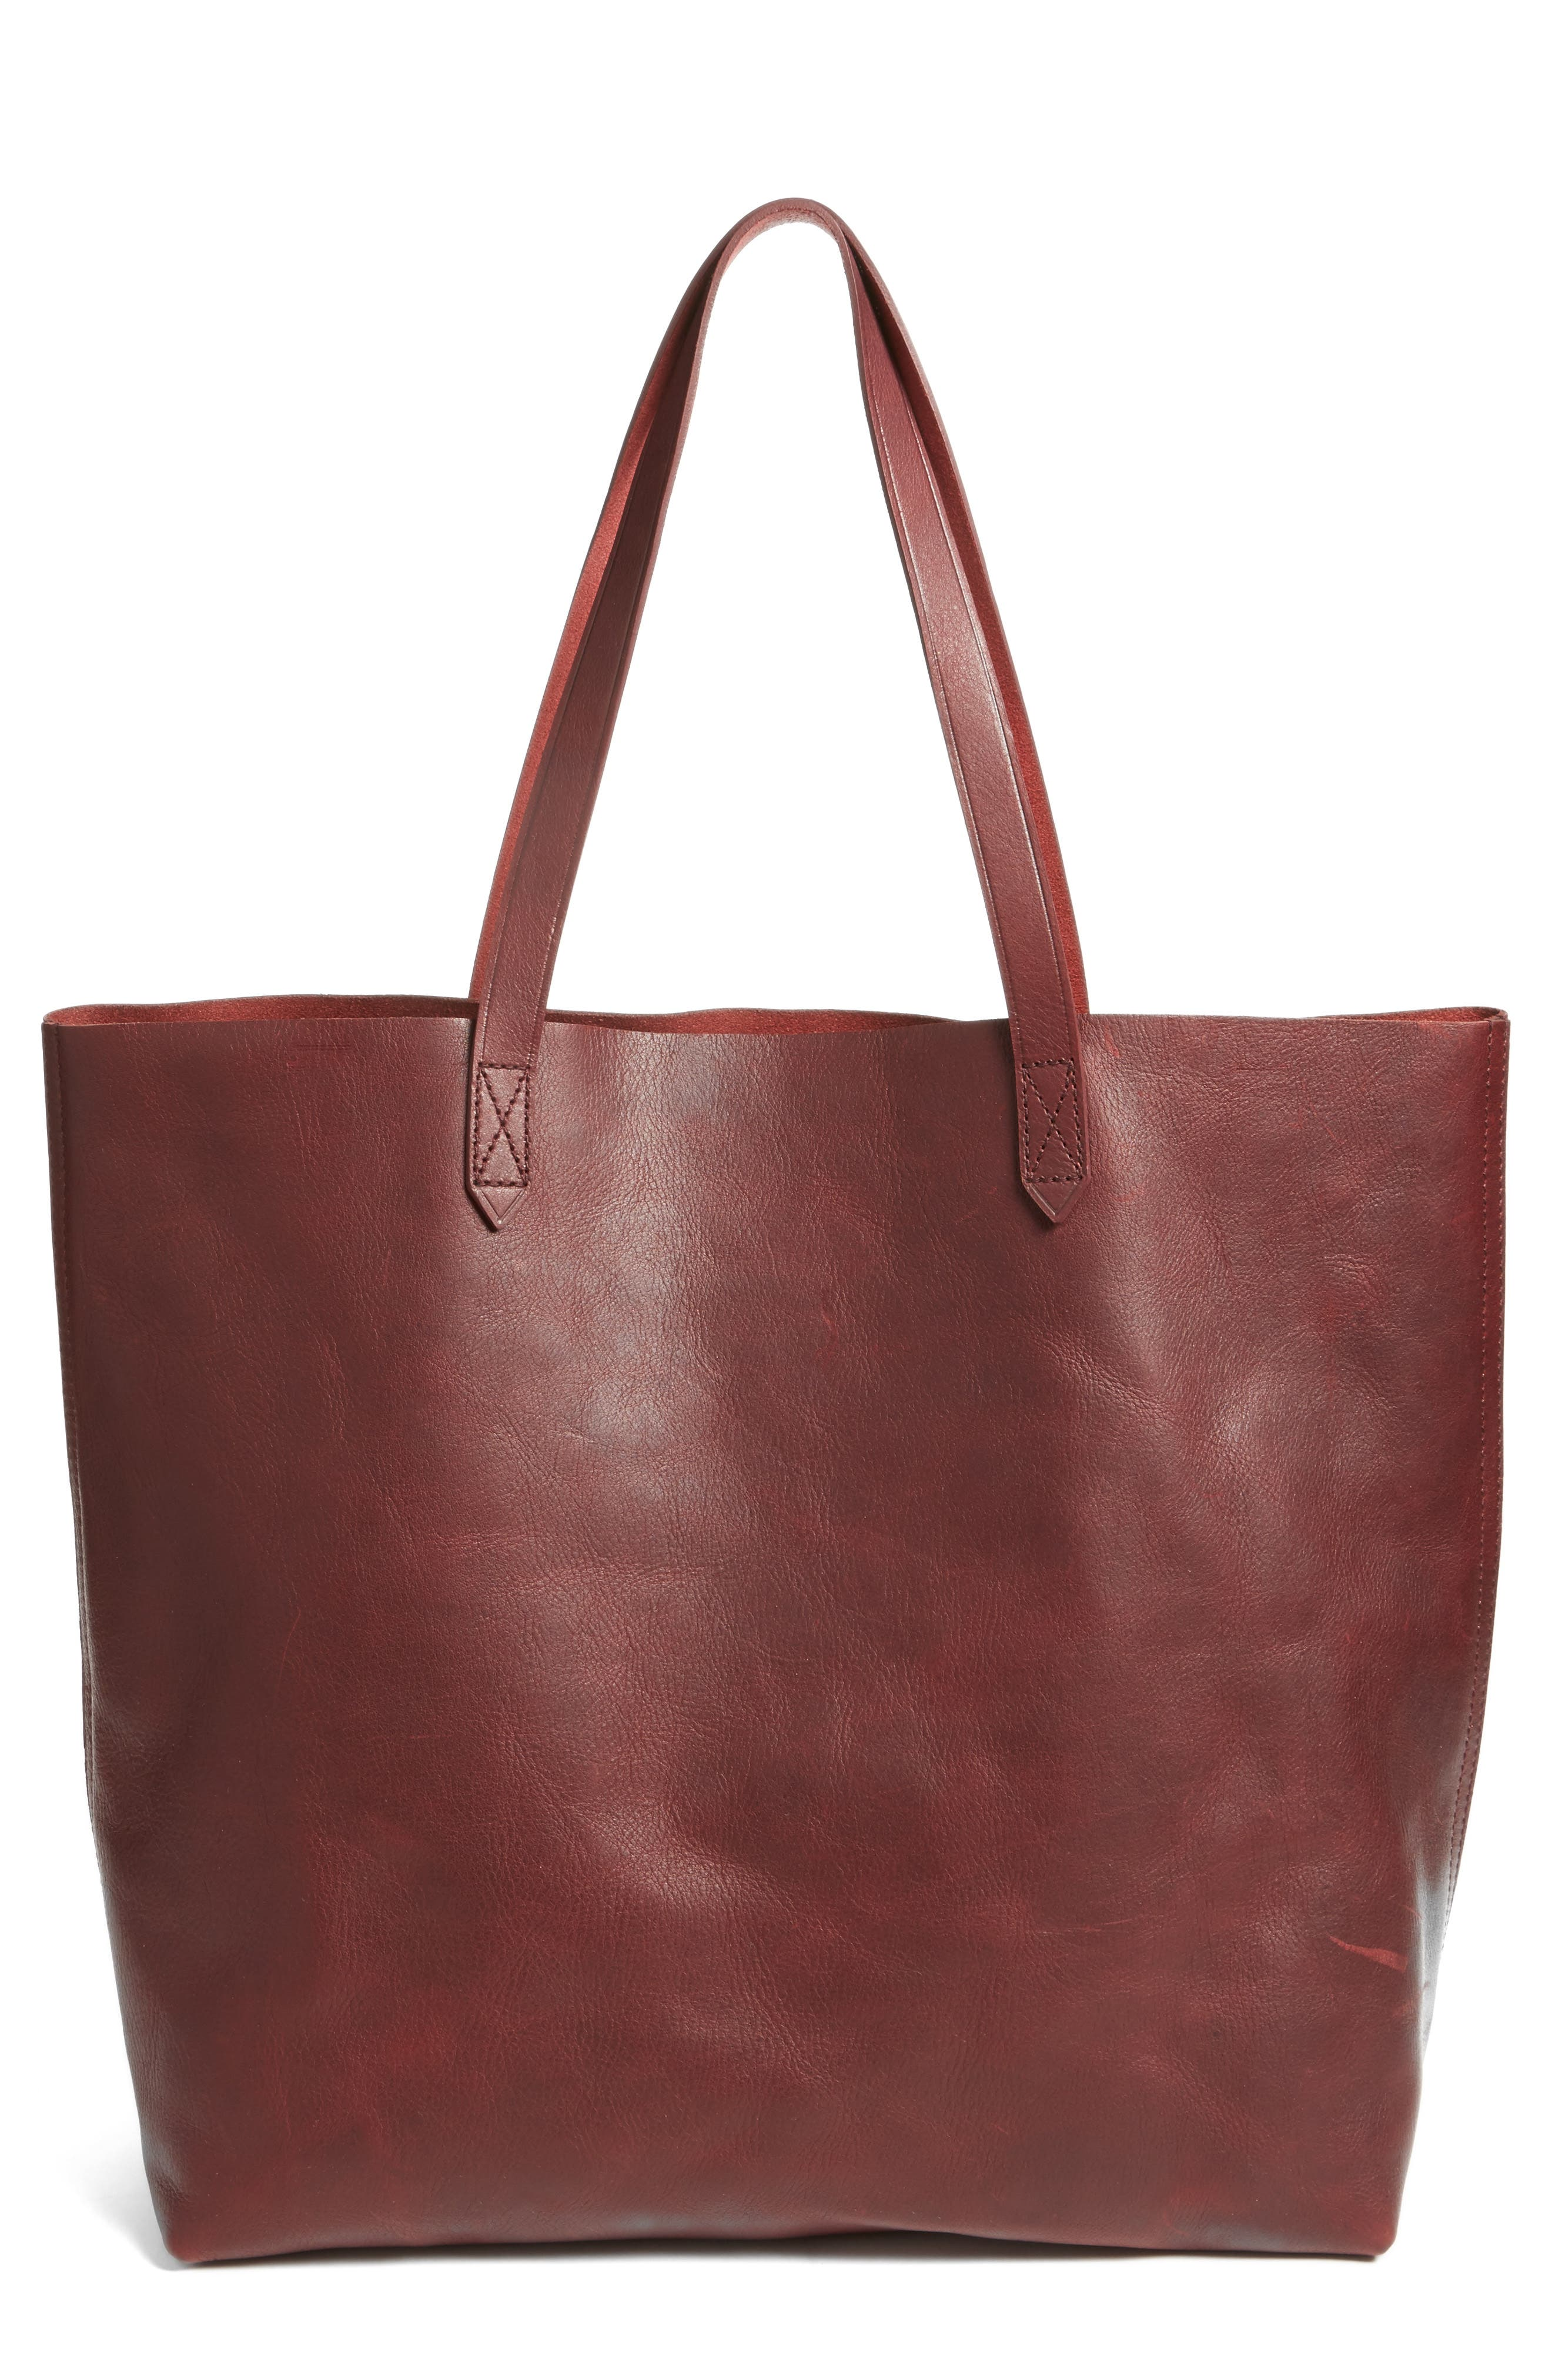 Transport Leather Tote,                             Main thumbnail 1, color,                             Dark Cocoa